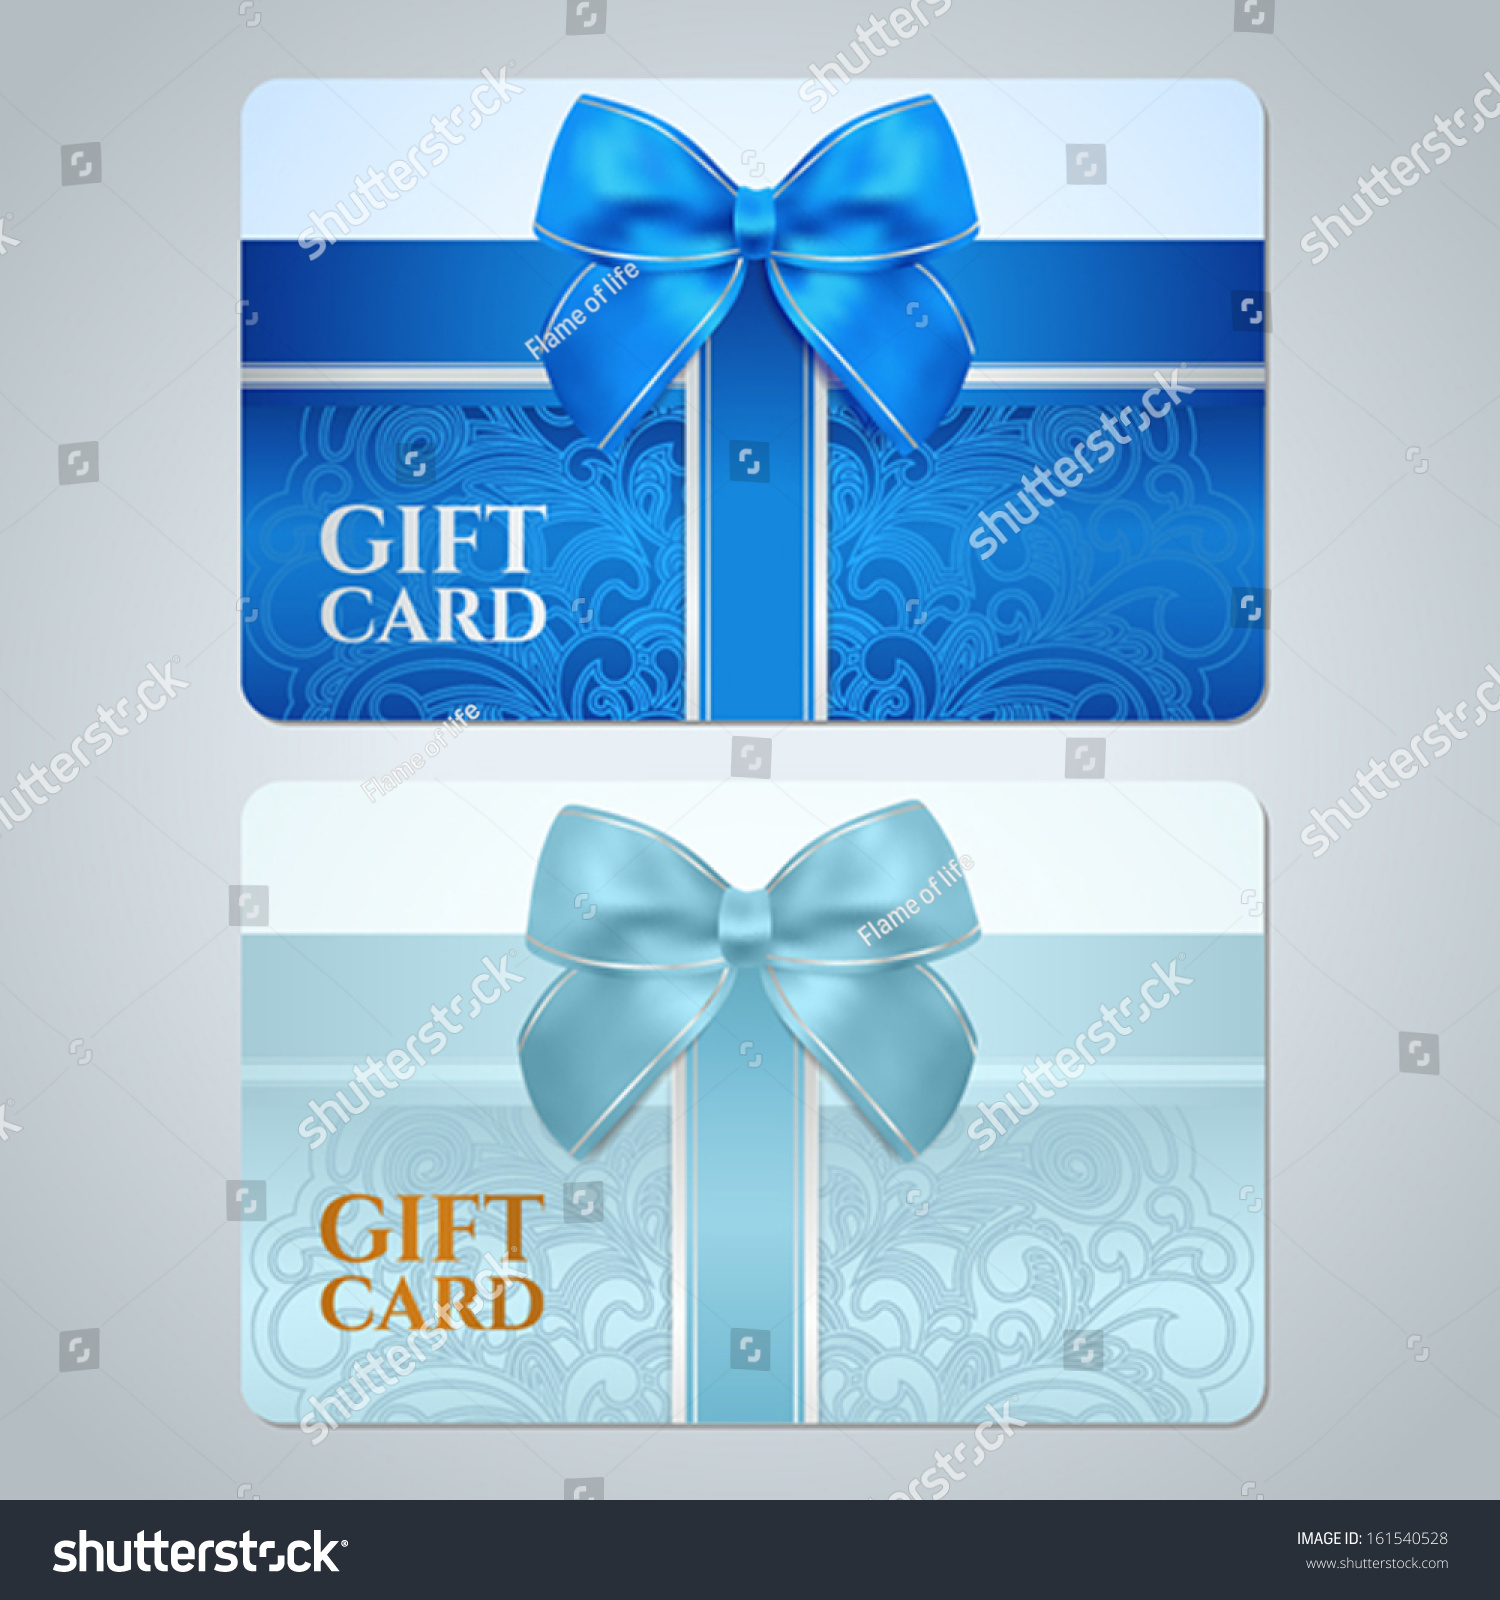 blue turquoise t card discount card stock vector